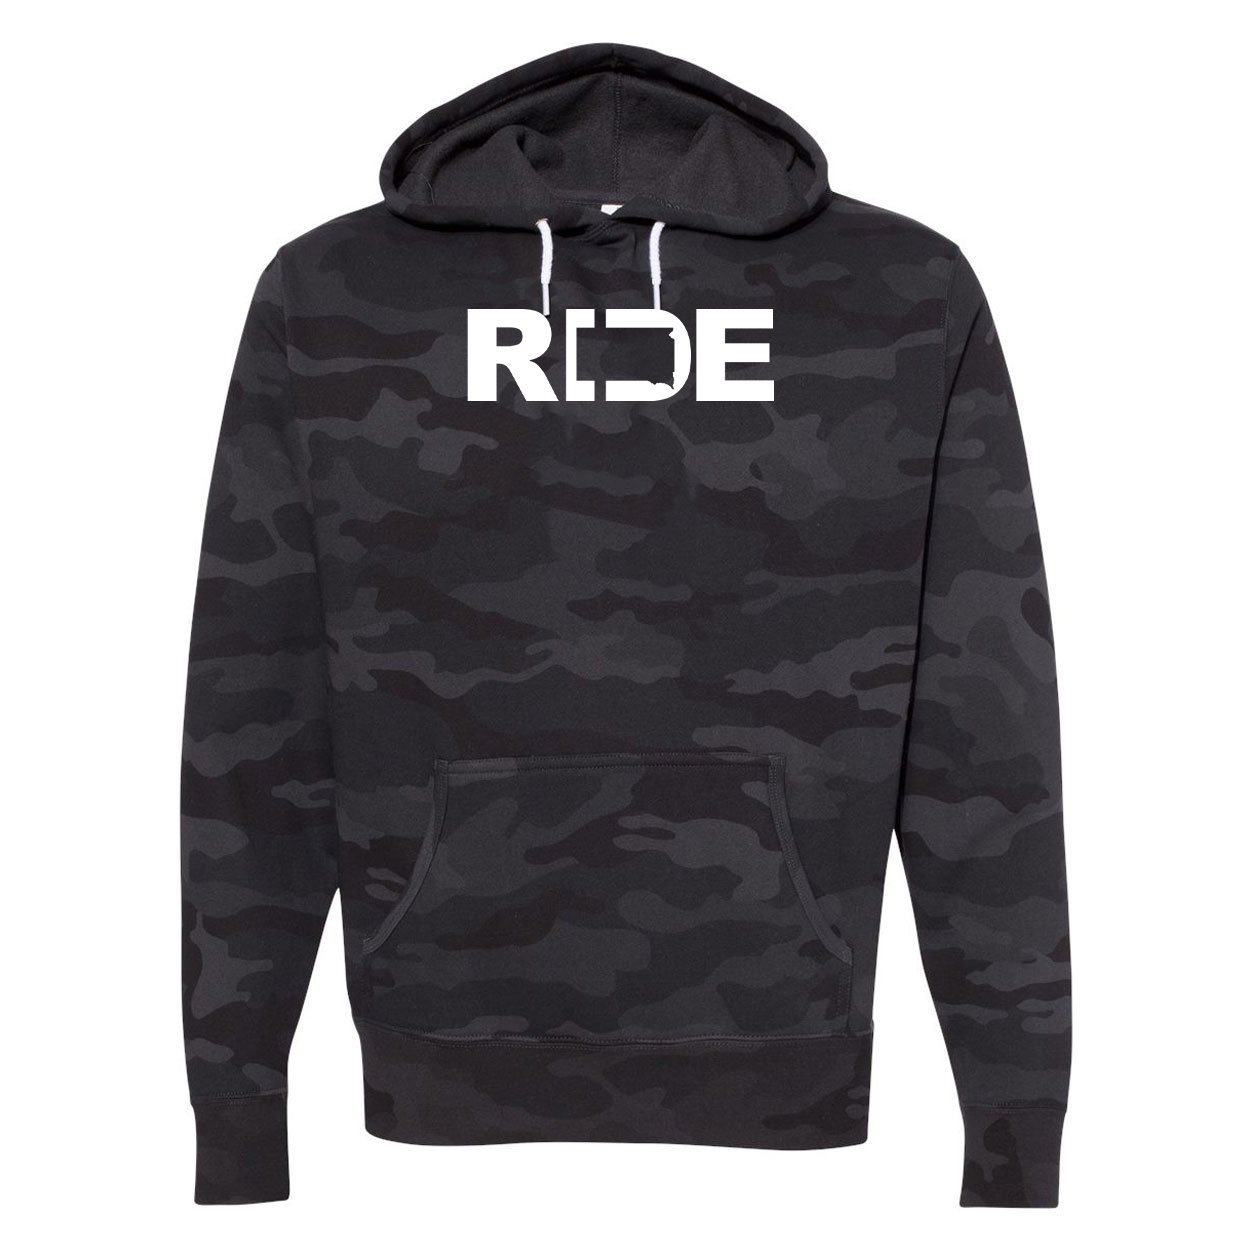 Ride South Dakota Classic Unisex Hooded Sweatshirt Black Camo (White Logo)